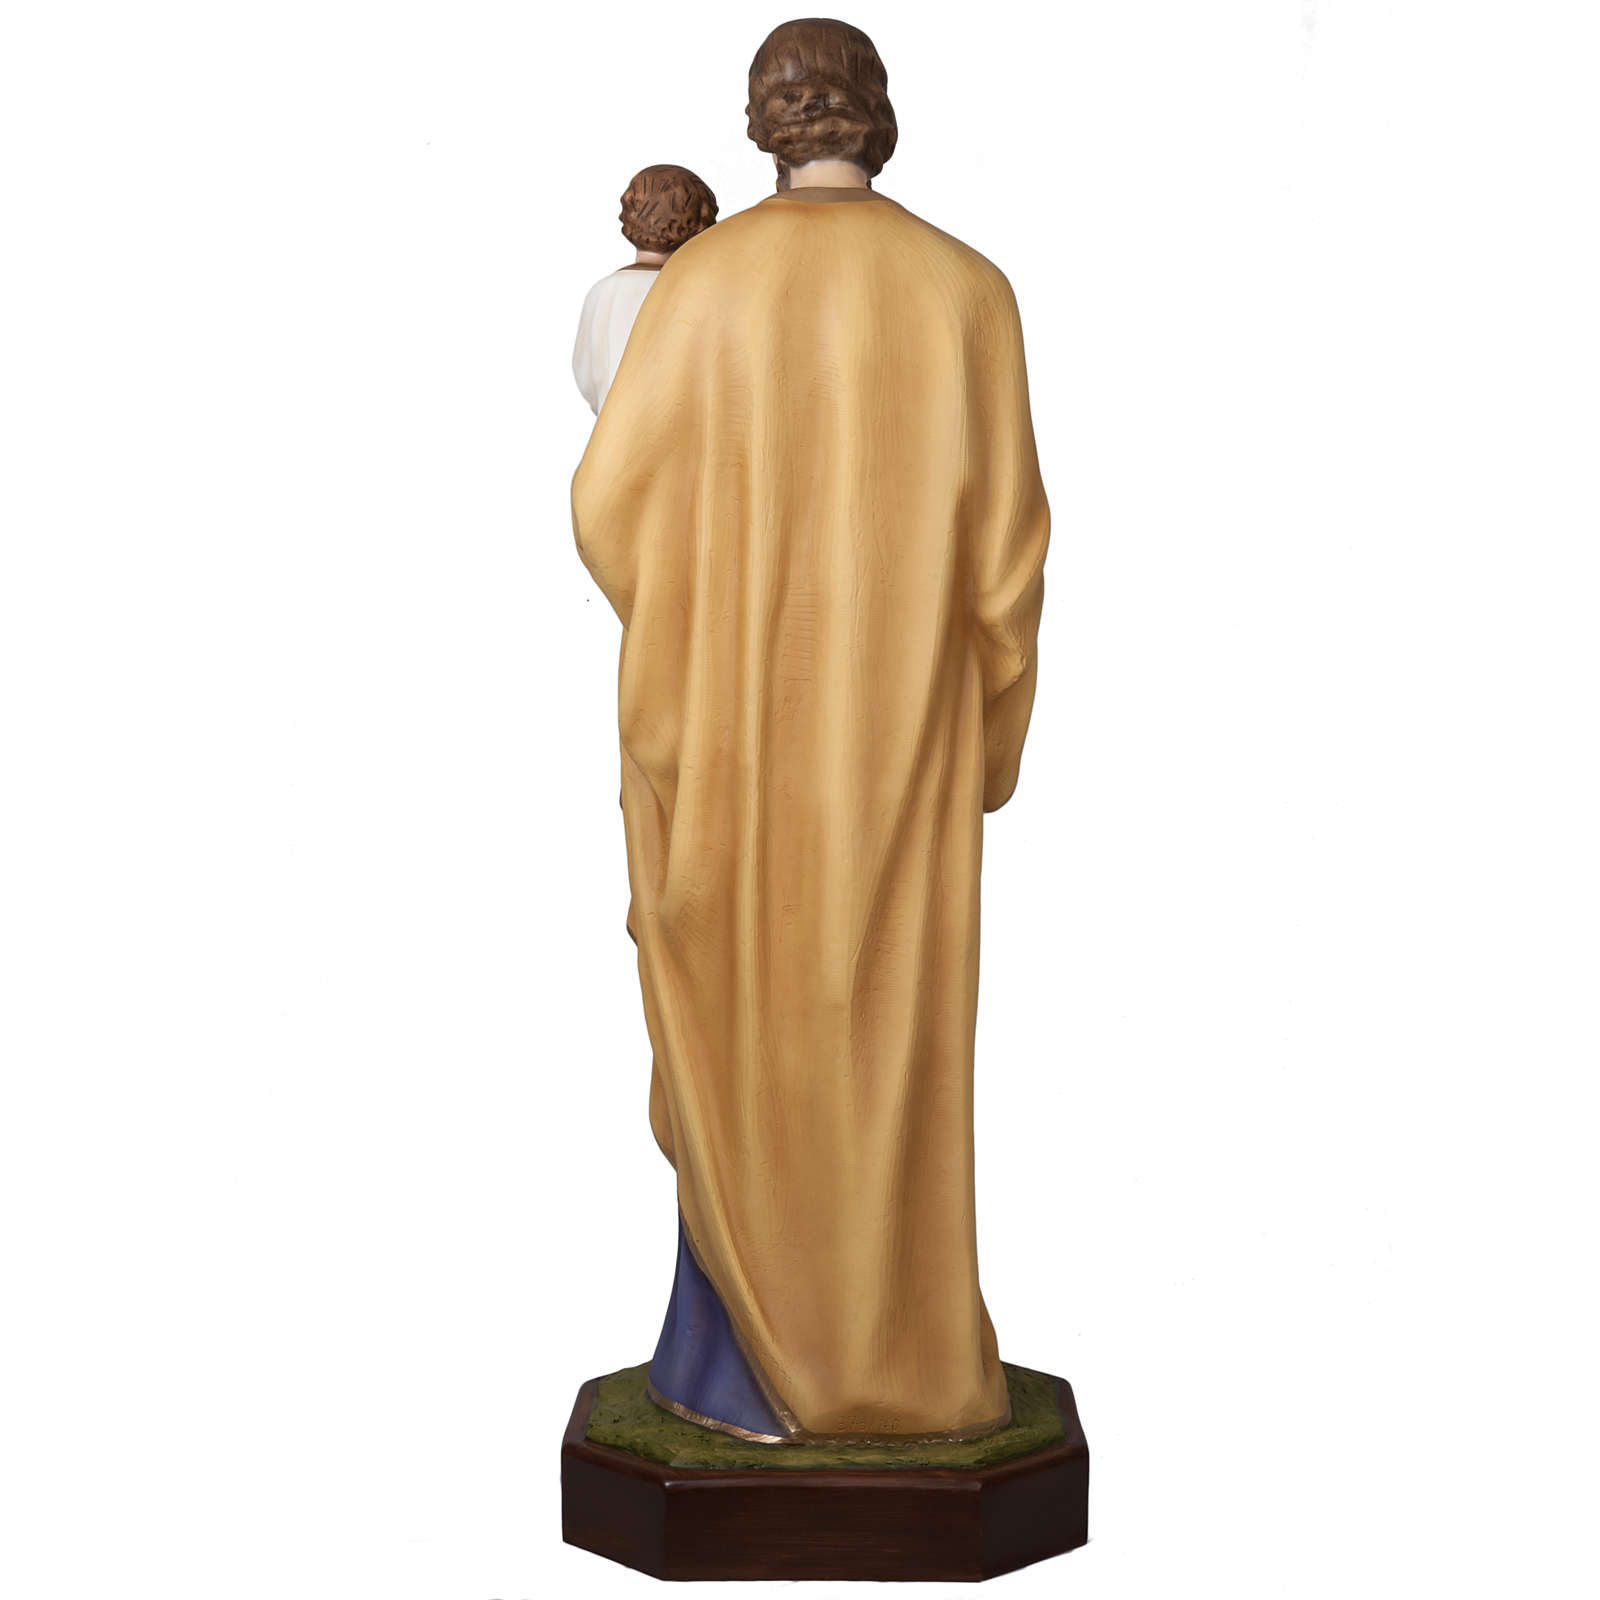 Saint Joseph with infant Jesus, fiberglass statue 160 cm 4